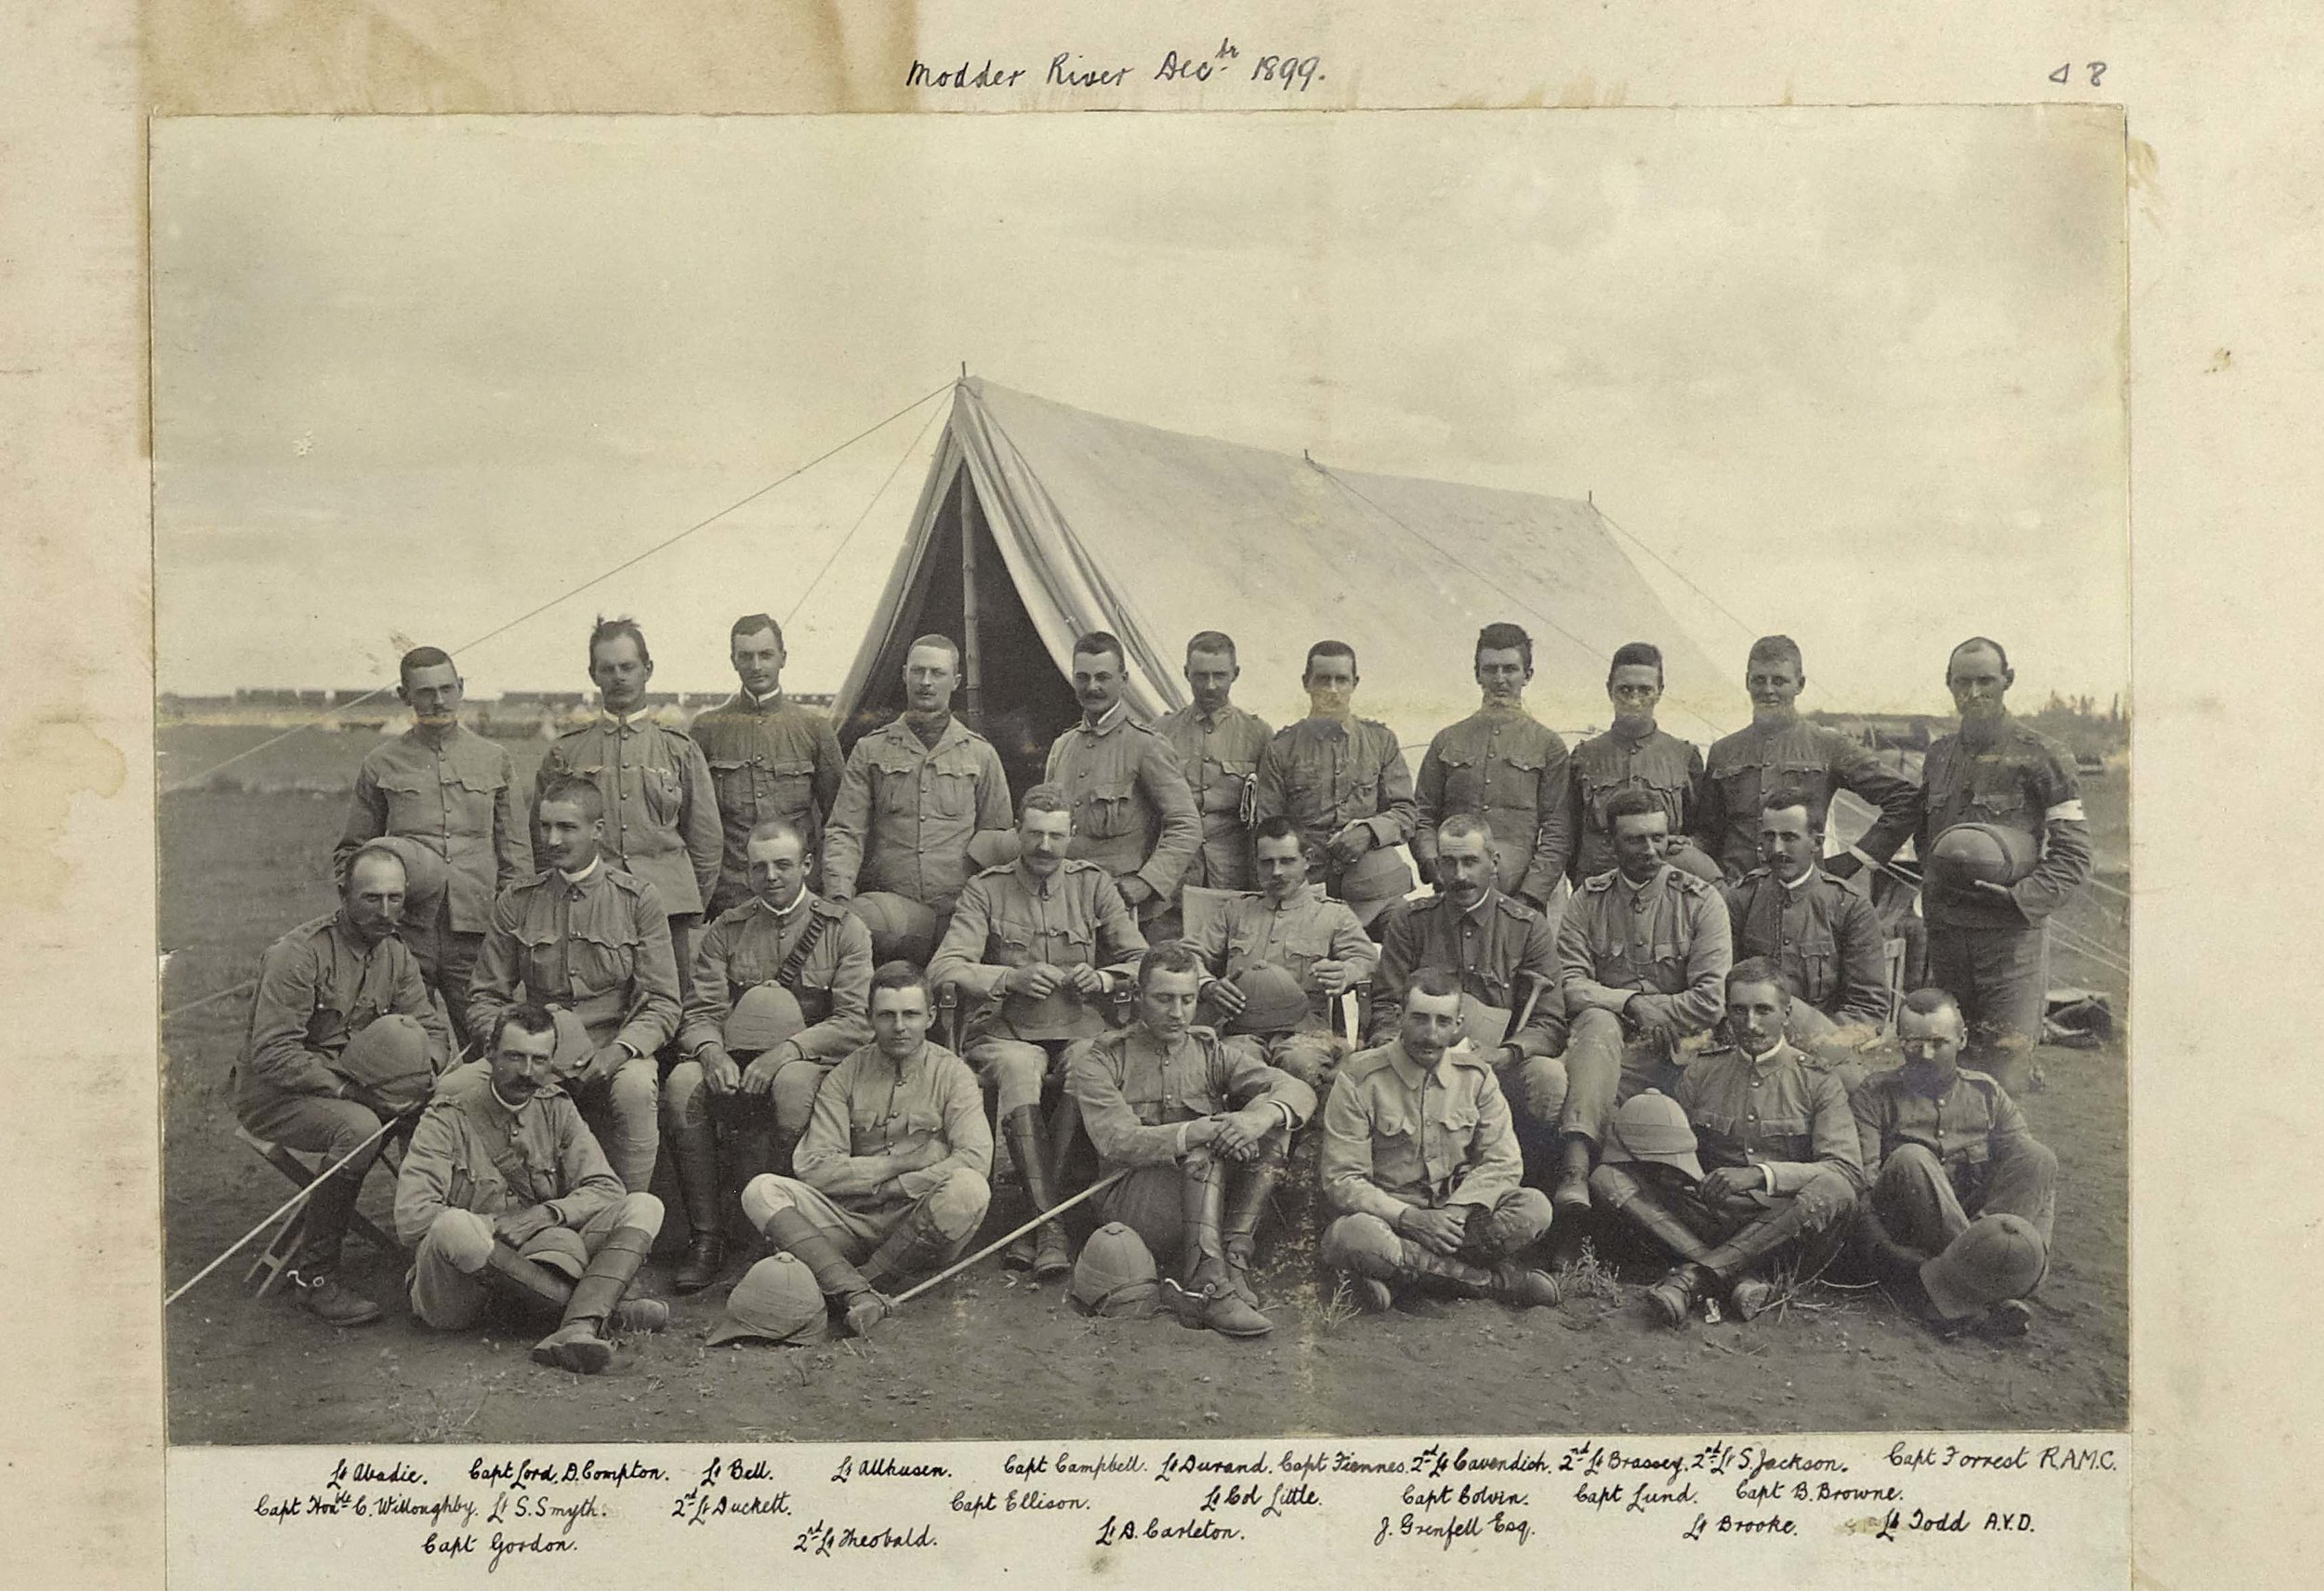 Officers of the 9th Lancers at the Modder River, South Africa, in December 1899, including Gordon, Colvin and Abadie, authors of the diaries cited here. Of this group, Brassey was killed, Ellison died of disease, Cambell, Gordon, Durand, Cavendish, Sadleir-Jackson, Little and Brooke were wounded, and Theobald became a Prisoner of War. J. Grenfell Esq' may be John Pascoe Grenfell, a Lieutenant in the Buckinghamshire Yeomanry and brother of Captain Francis Octavius Grenfell, who won the V.C. with the 9th Lancers during the First World War (copyright 9th/12th Lancers Regimental Museum, Accession No 2090-16-48).